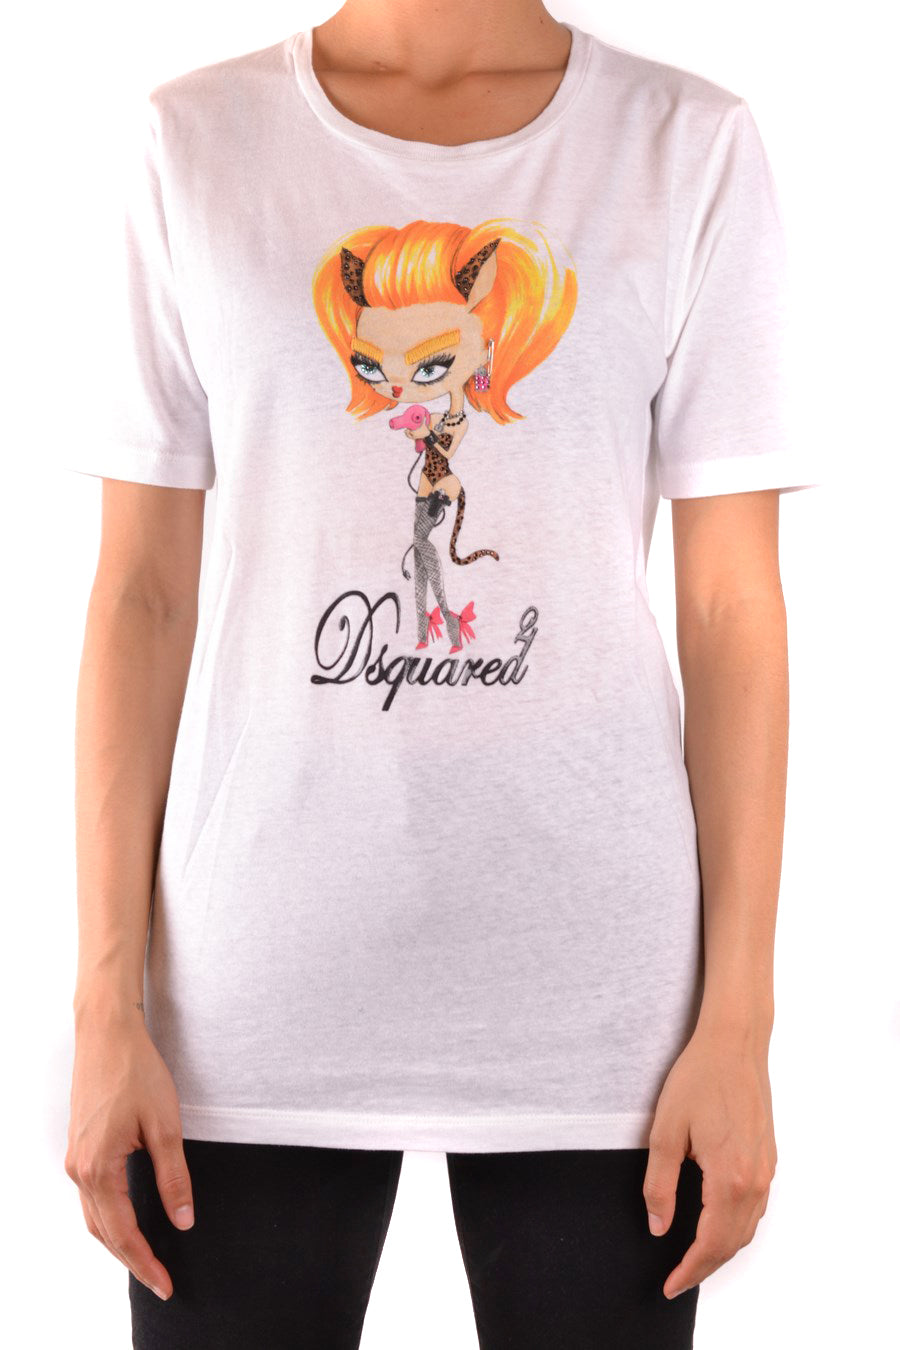 Tshirt Short Sleeves Dsquared-Tshirt Short Sleeves - WOMAN-M-Product Details Terms: New With LabelYear: 2018Main Color: WhiteGender: WomanMade In: ItalyManufacturer Part Number: S20696 S73Gc0097Size: IntSeason: Spring / SummerClothing Type: T-ShirtComposition: Cotton 70%, Linen 30%-Keyomi-Sook